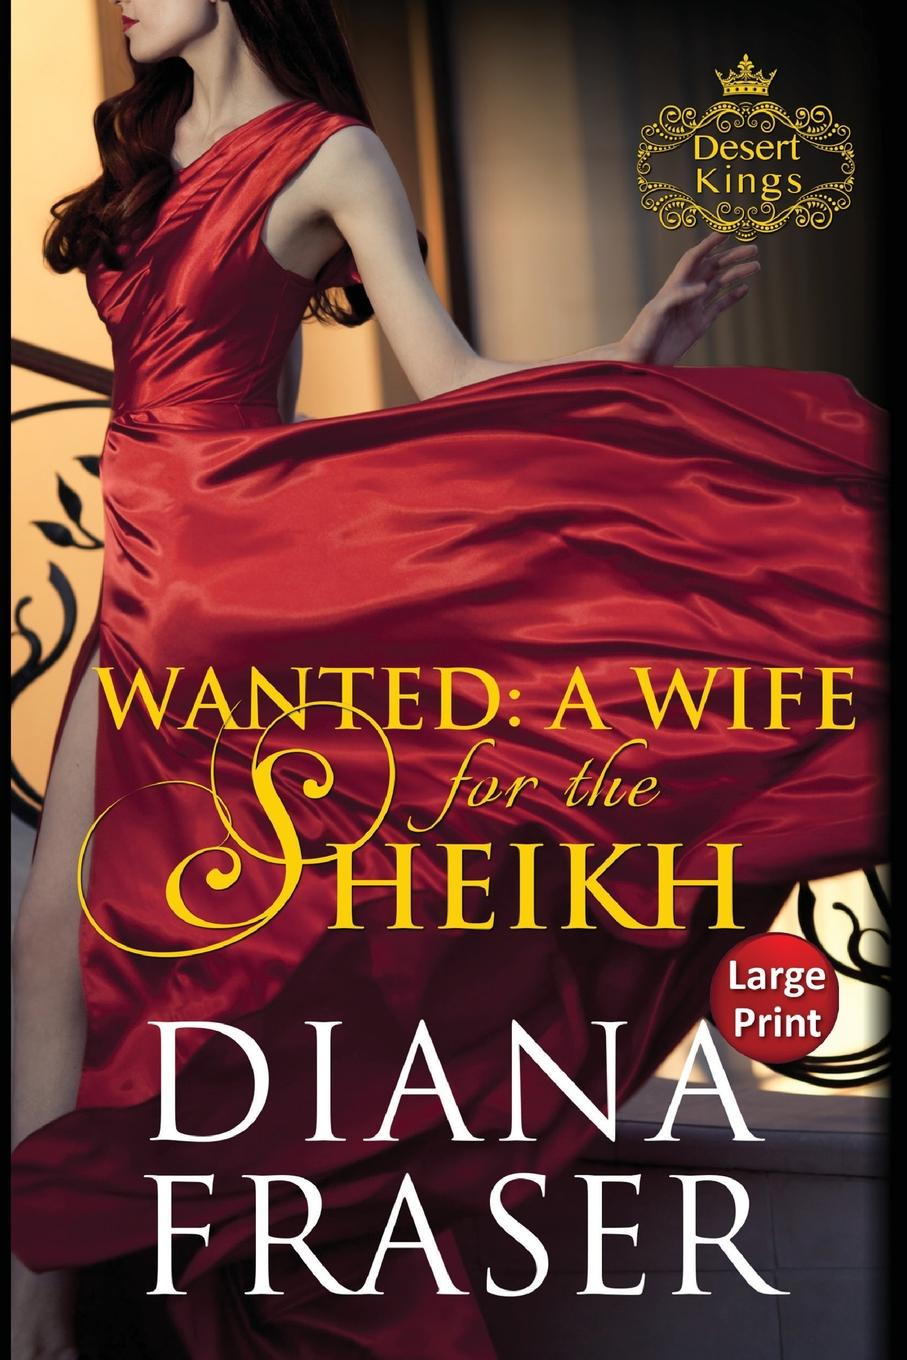 Diana Fraser Wanted, A Wife for the Sheikh. Large Print sophie conran the mini book of pies